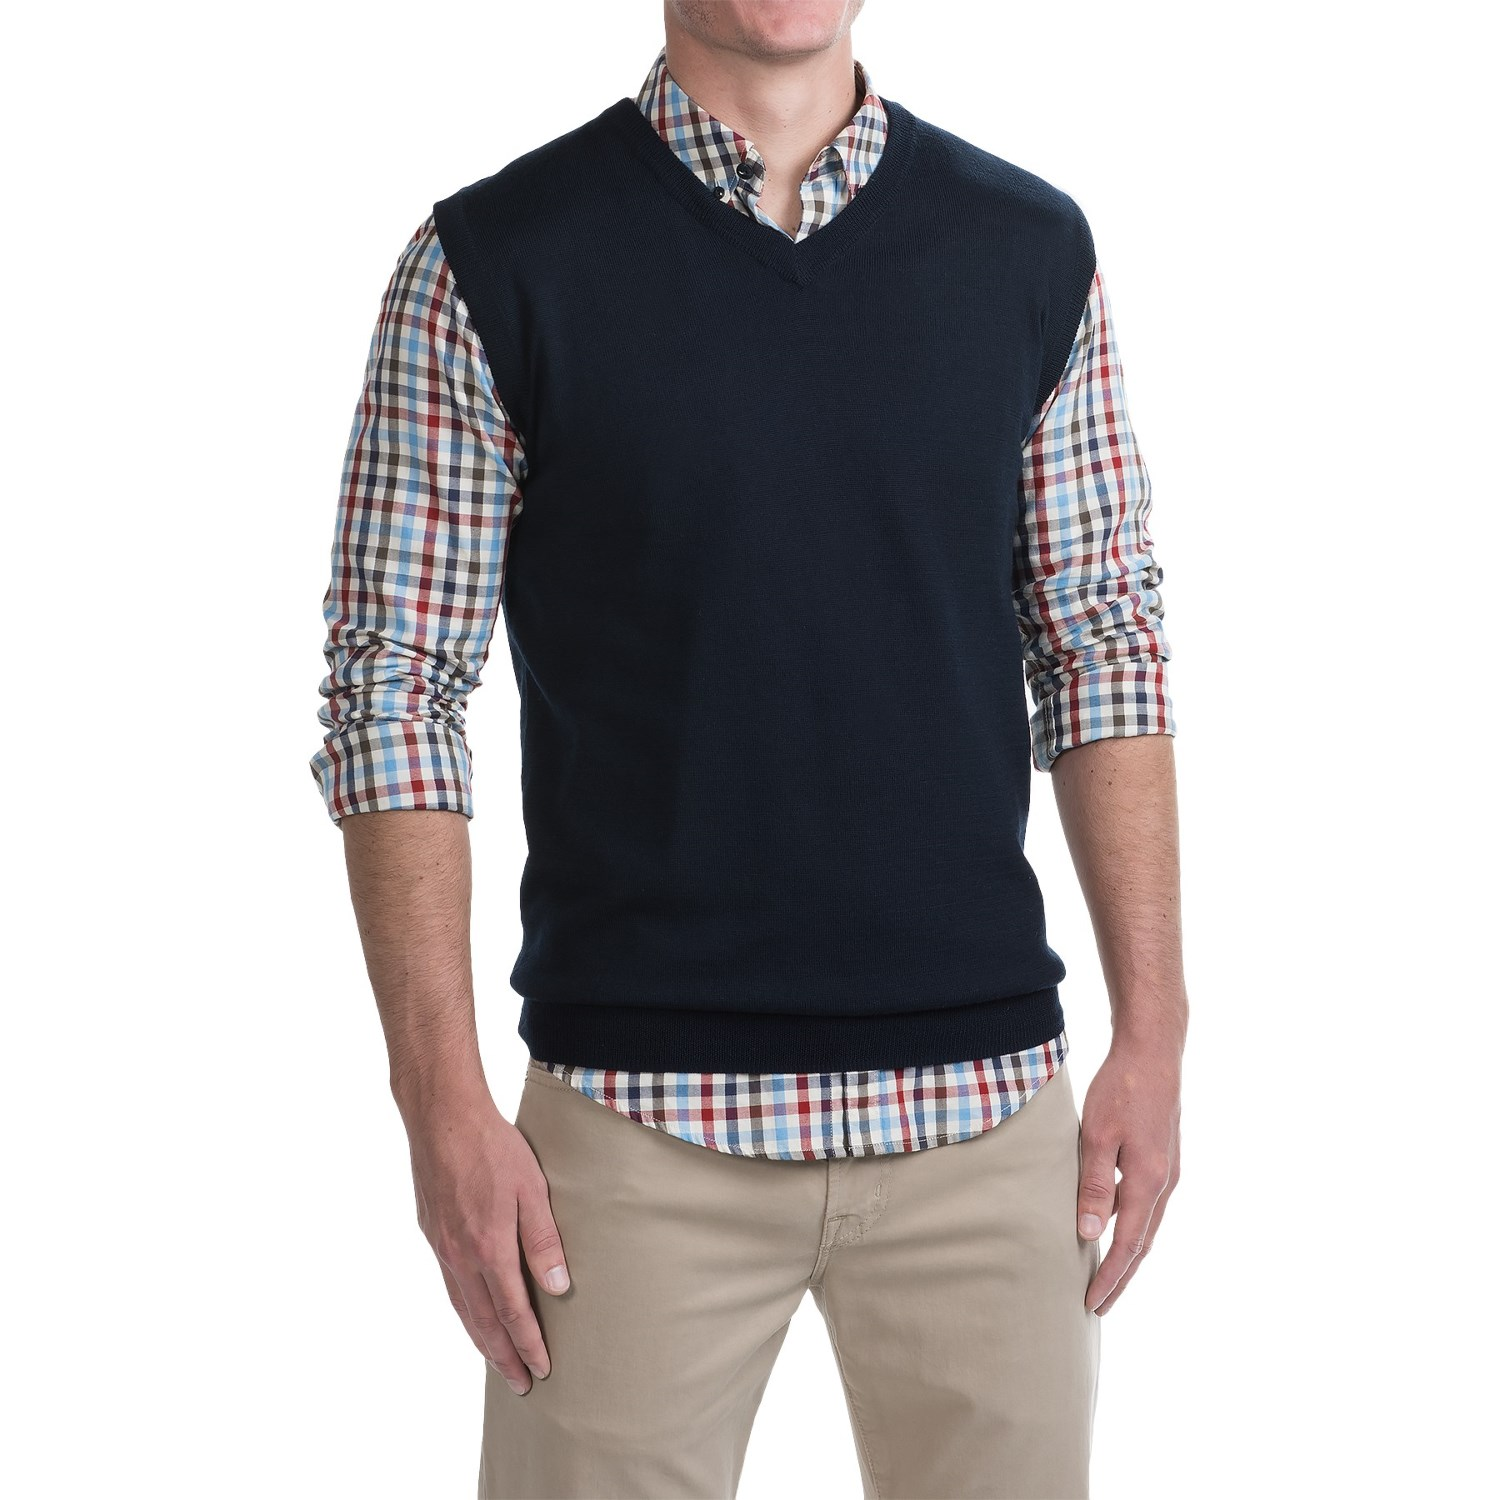 Product Features Basic knit vest for dailywear / The best knit fabric for warmth and.